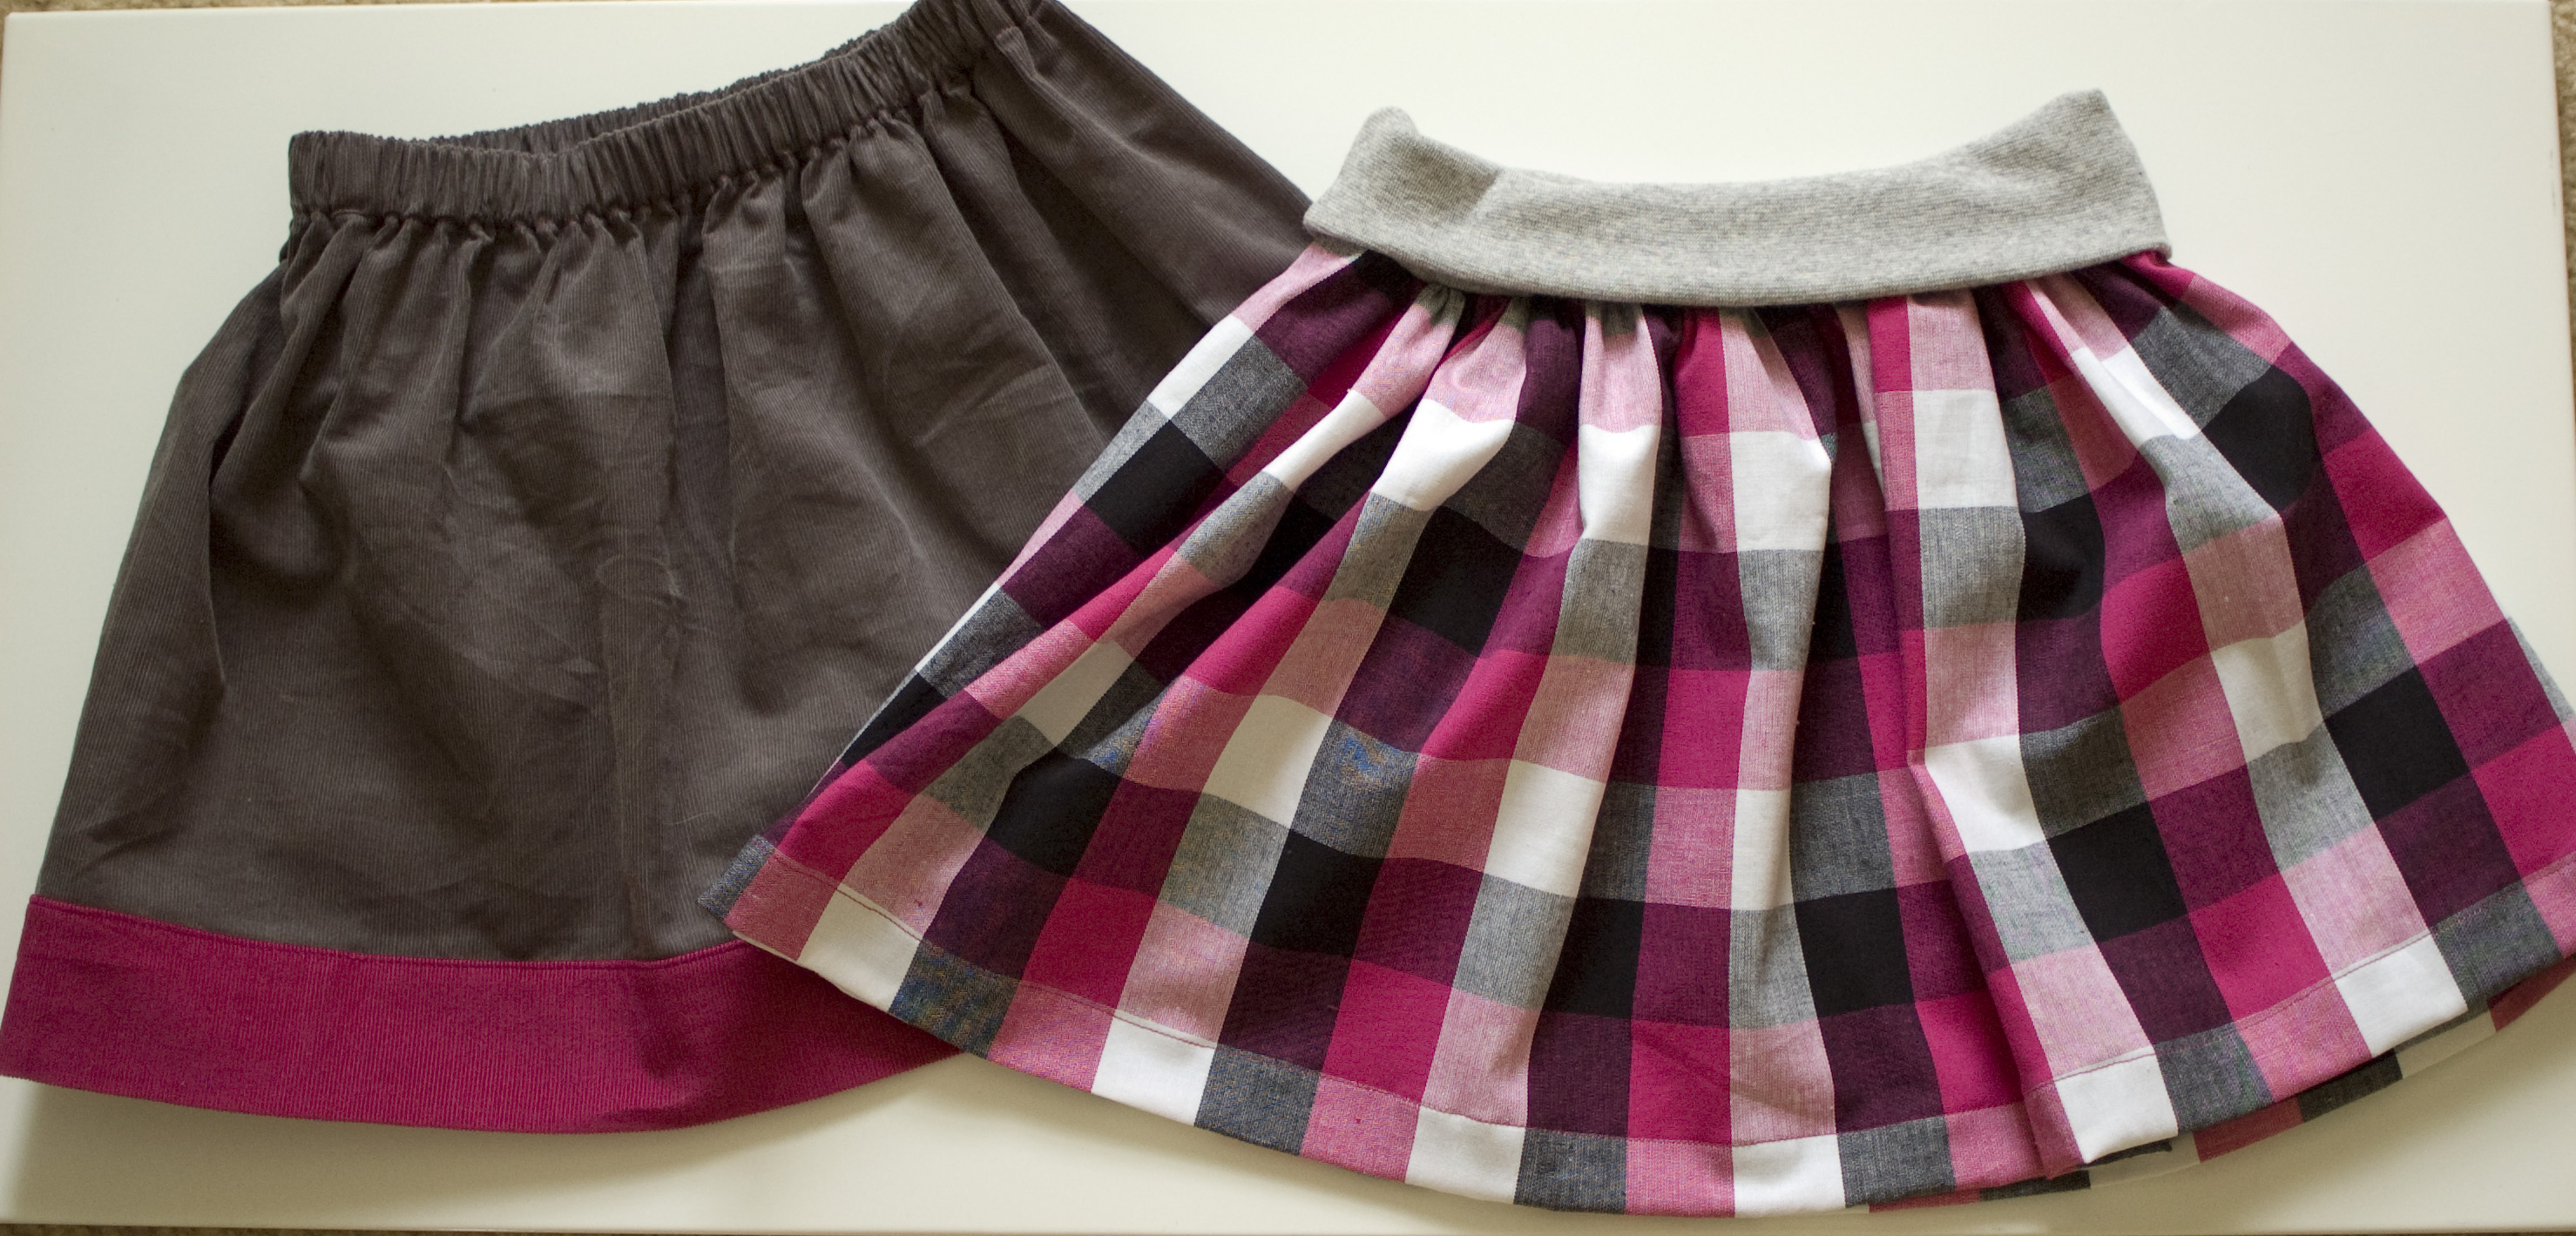 Two Simple Skirts (KCWC Day 1)